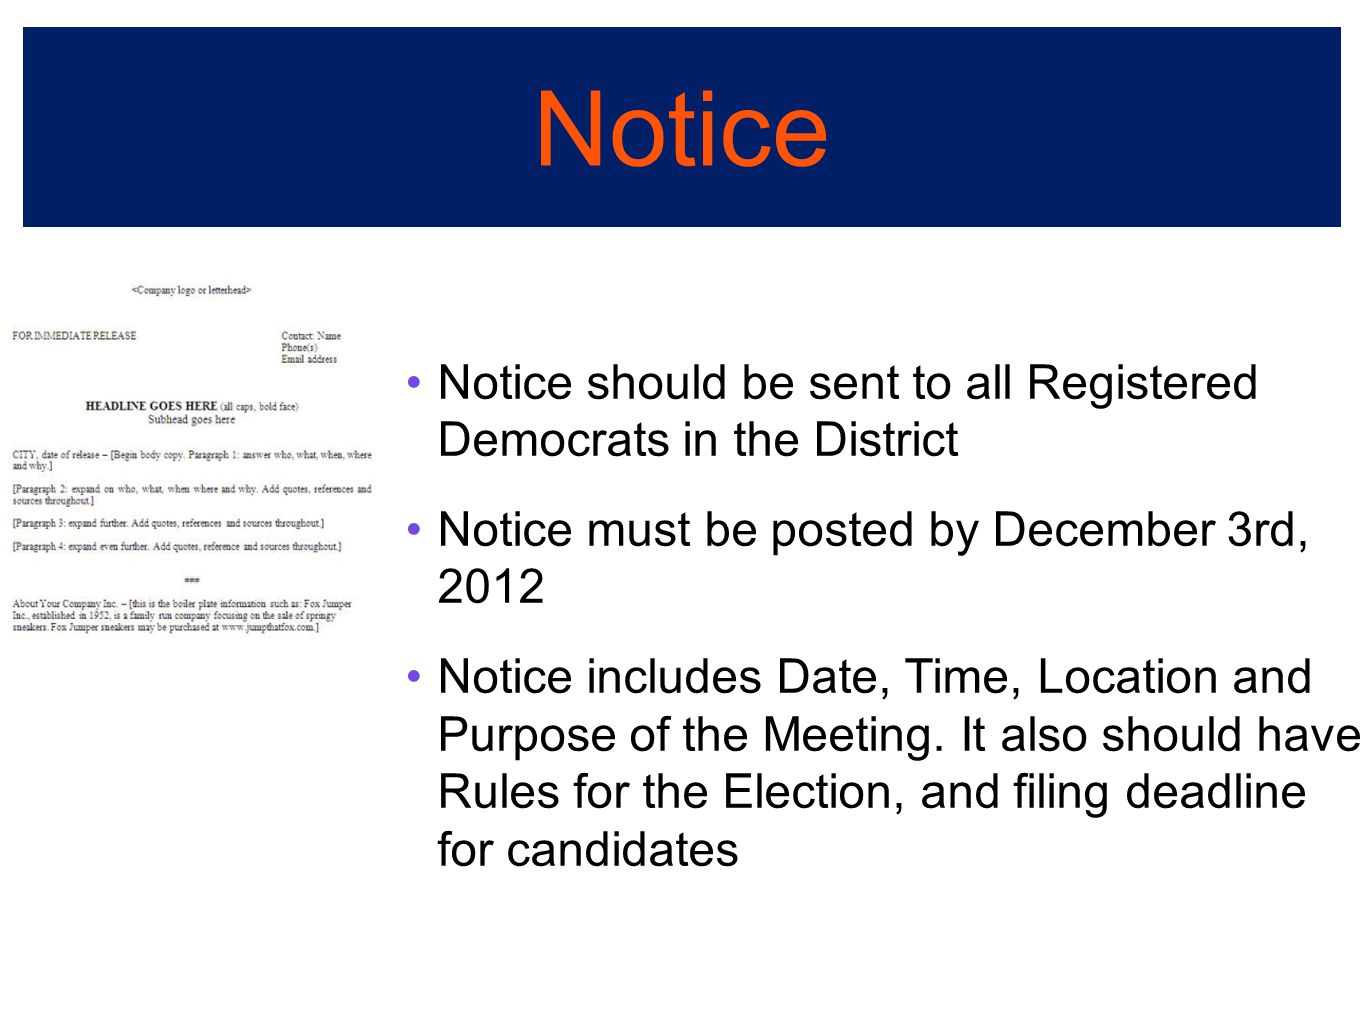 Notice should be sent to all Registered Democrats in the District Notice must be posted by December 3rd, 2012 Notice includes Date, Time, Location and